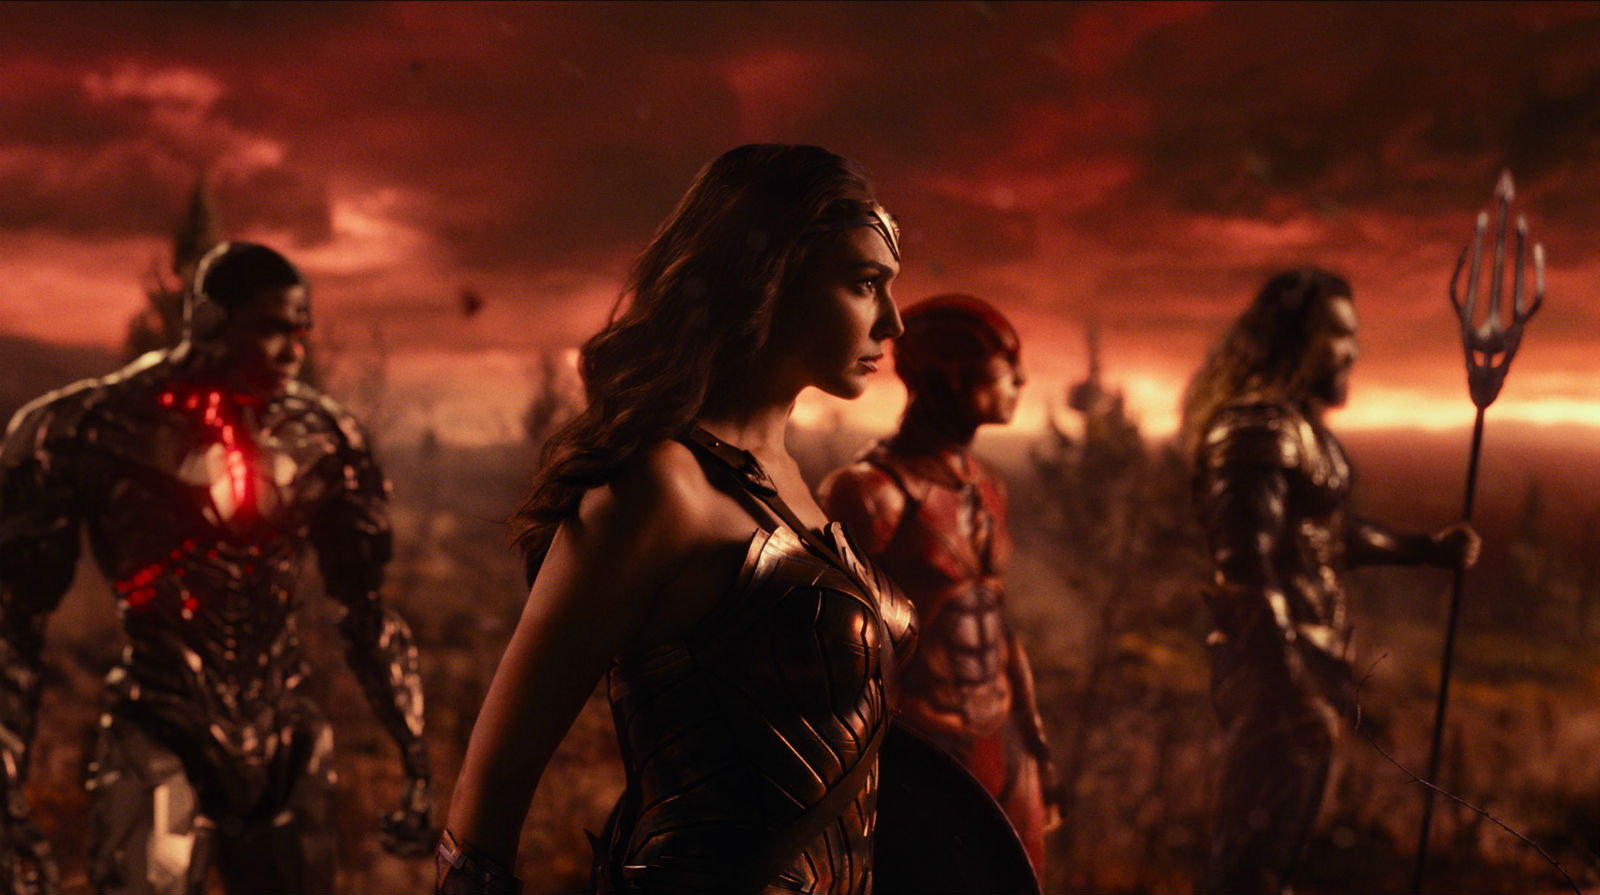 An excting scene from Justice League. Note who is missing...